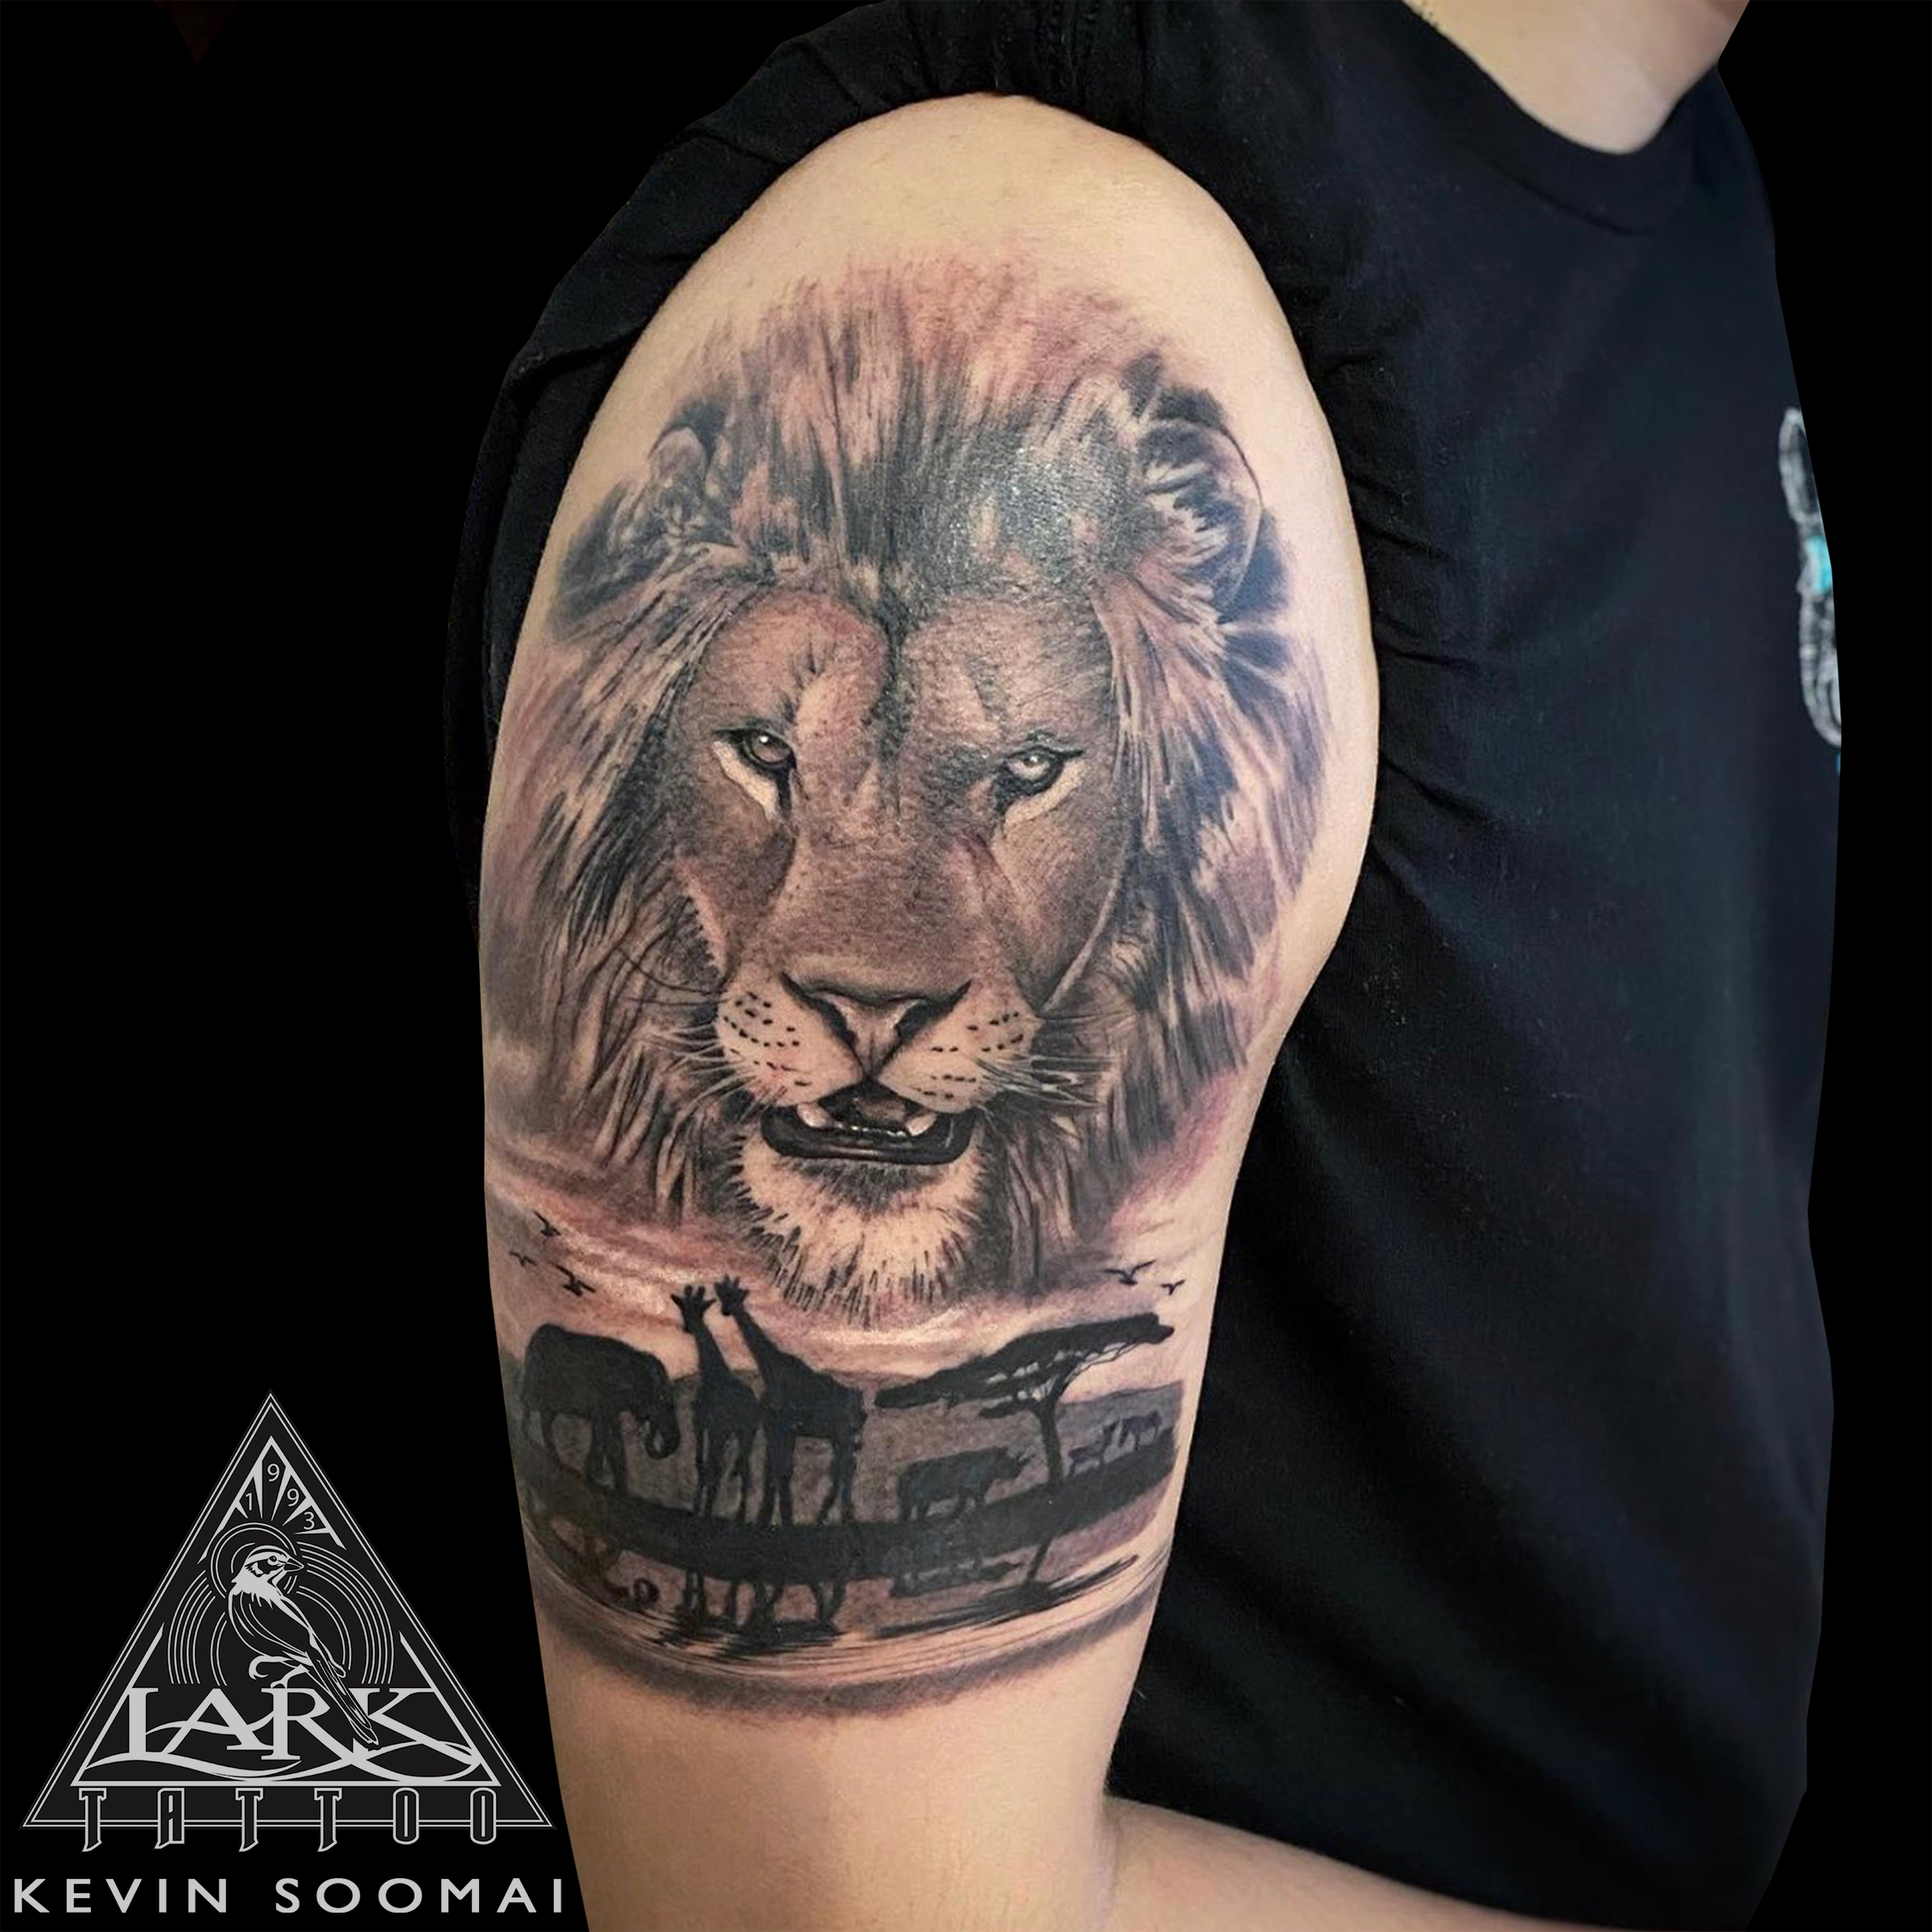 #LarkTattoo #KevinSoomai #KevinSoomaiLarkTattoo #Tattoo #Lion #LionTattoo #Giraffe #GiraffeTattoo #Elephant #ElephantTattoo #Rhino #RhinoTattoo #Zebra #ZebraTattoo #Safari #SafariTattoo #Animal #AnimalTattoo #Nature #NatureTattoo #TattooHalfSleeve #HalfSleeve #HalfSleeveTattoo #Realism #RealismTattoo #Realistic #RealisticTattoo #BNG #BNGTattoo #BlackAndGray #BlackAndGrayTattoo #BlackAndGrey #BlackAndGreyTattoo #BlackAndGrayRealism #BlackAndGrayRealismTattoo #BlackAndGreyRealism #BlackAndGreyRealismTattoo #Tattoos #TattooArtist #Tattoist #Tattooer #LongIslandTattooArtist #LongIslandTattooer #LongIslandTattoo #TattooOfTheDay #Tat #Tats #Tatts #Tatted #Inked #Ink #TattooInk #AmazingInk #AmazingTattoo #BodyArt #LarkTattooWestbury #Westbury #LongIsland #NY #NewYork #USA #Art #Tattedup #InkedUp #LarkTattoos